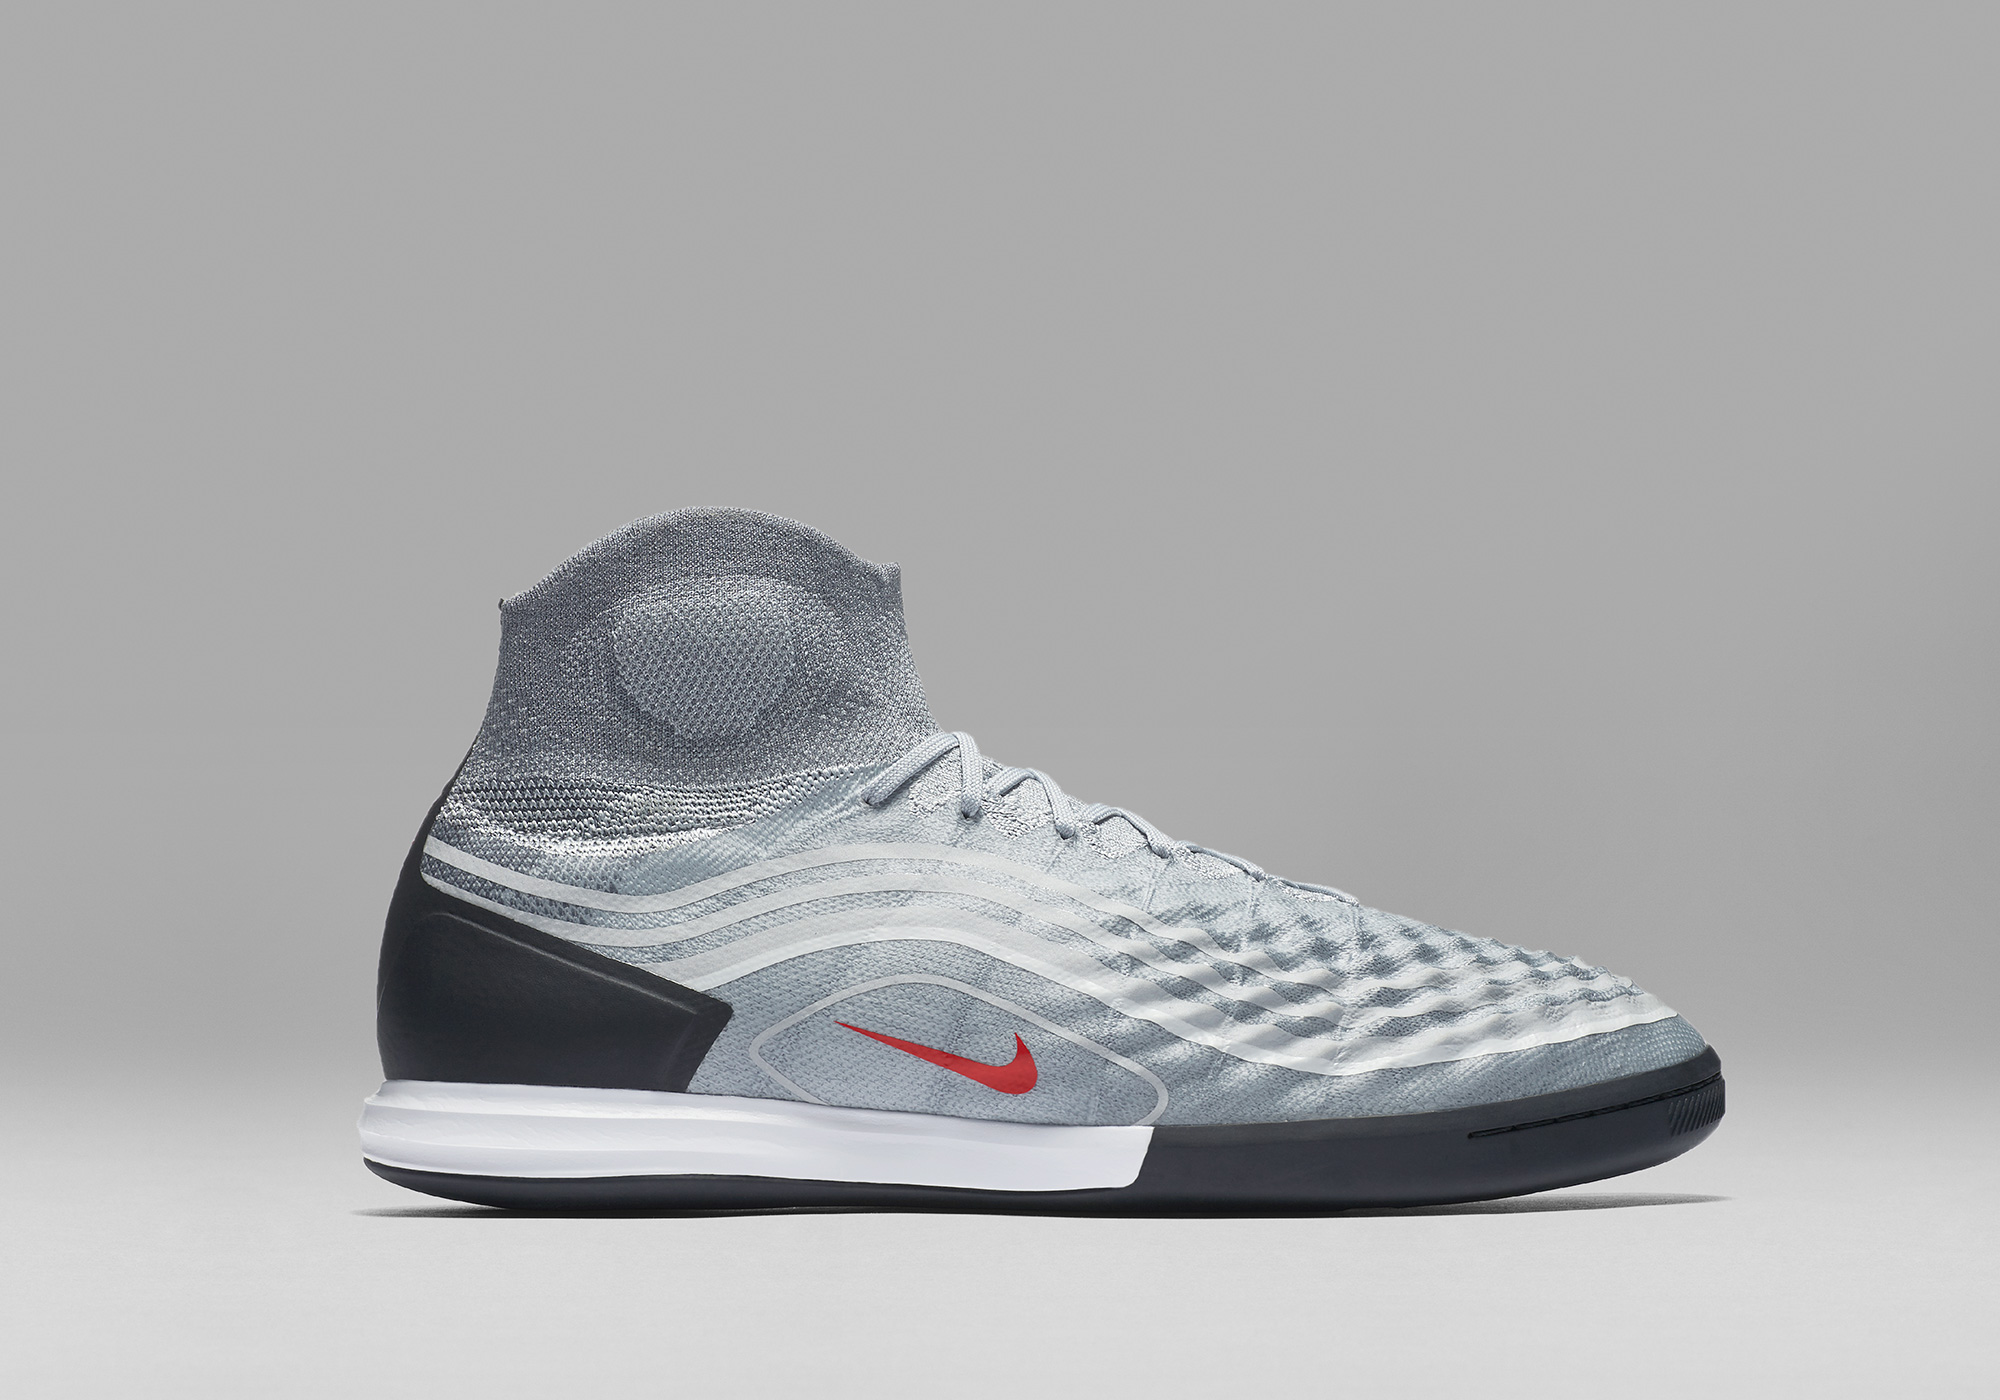 SP17_GFB_Magista_Heritage_Pack_NFX_843957-060_MagistaX_Proximo_II_IC_1_8_66867